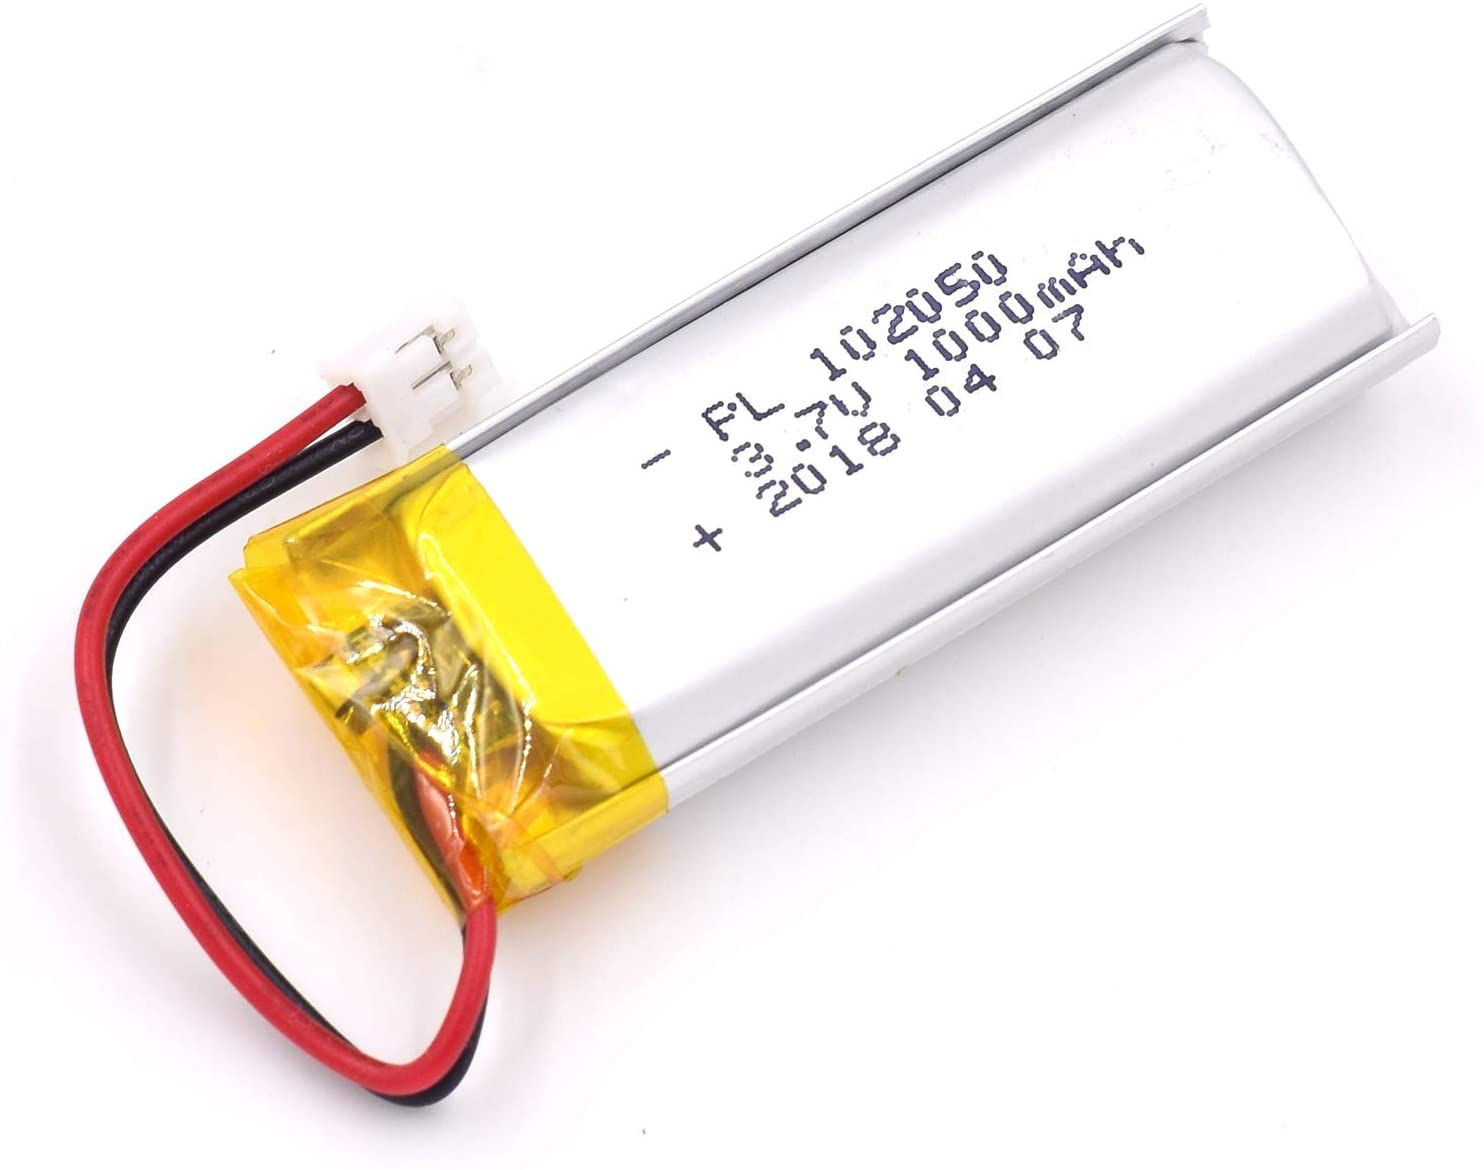 3.7V 1000mAh 102050 Lipo Battery Rechargeable Lithium Polymer ion Battery Pack with JST Connector